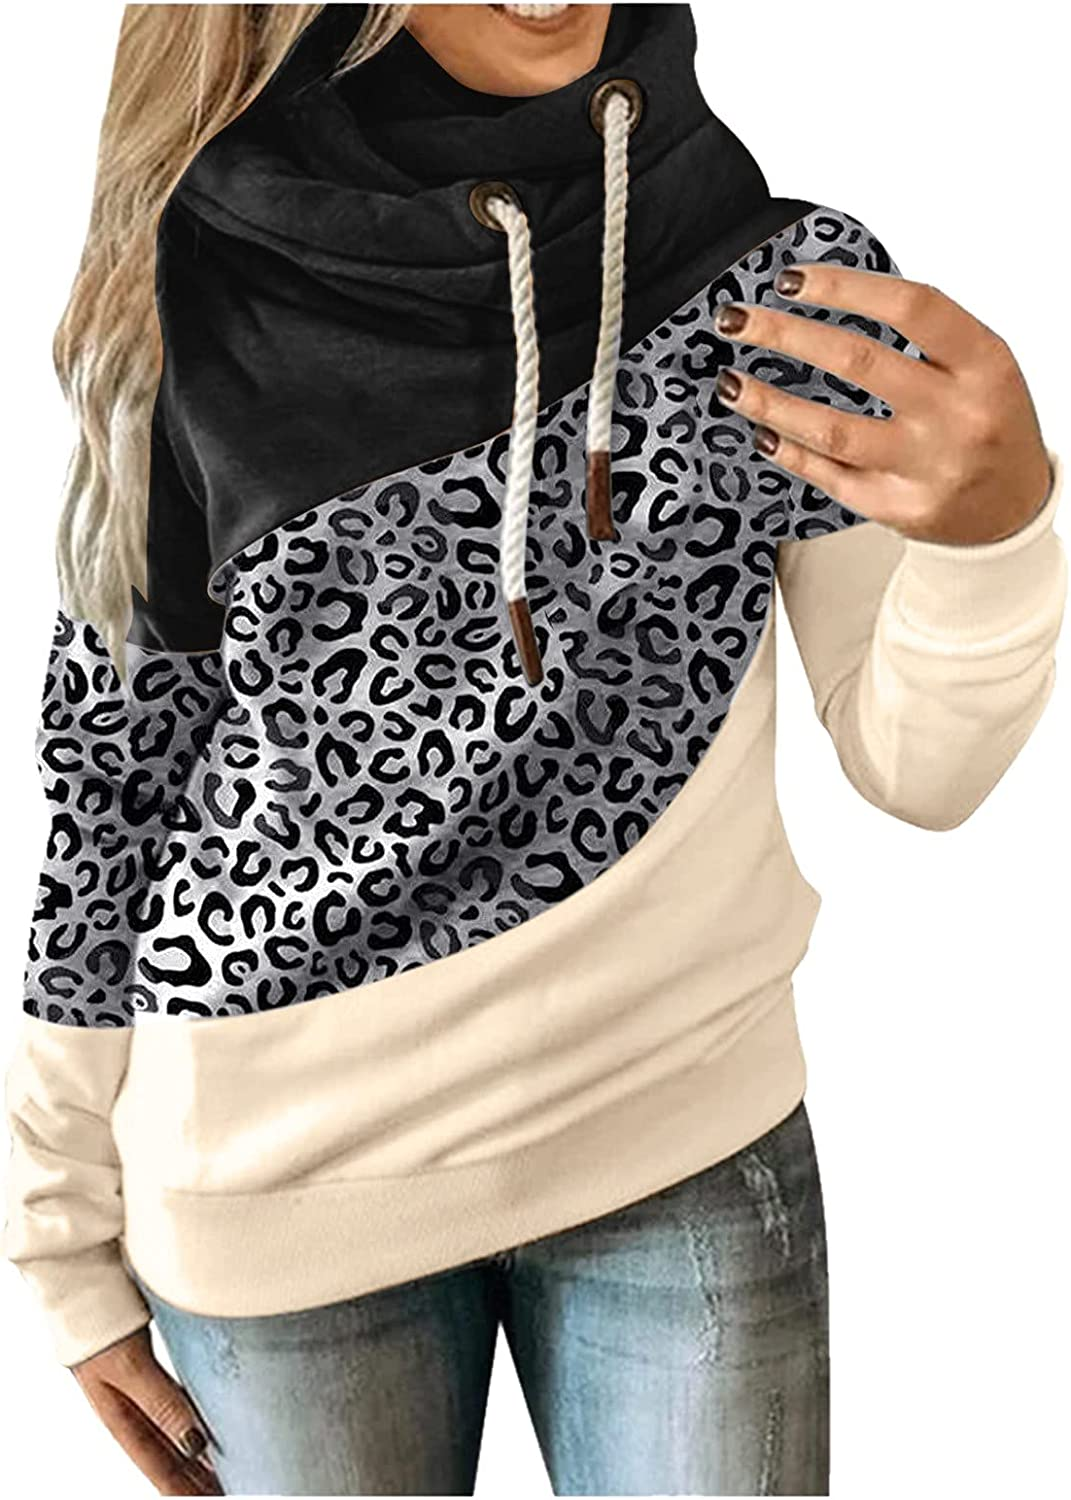 Tunic Sweatshirt for Women Plus Size Casual Long Sleeve Drawstring Hoodie Leopard Graphic Color Block Aesthetic Top Tee